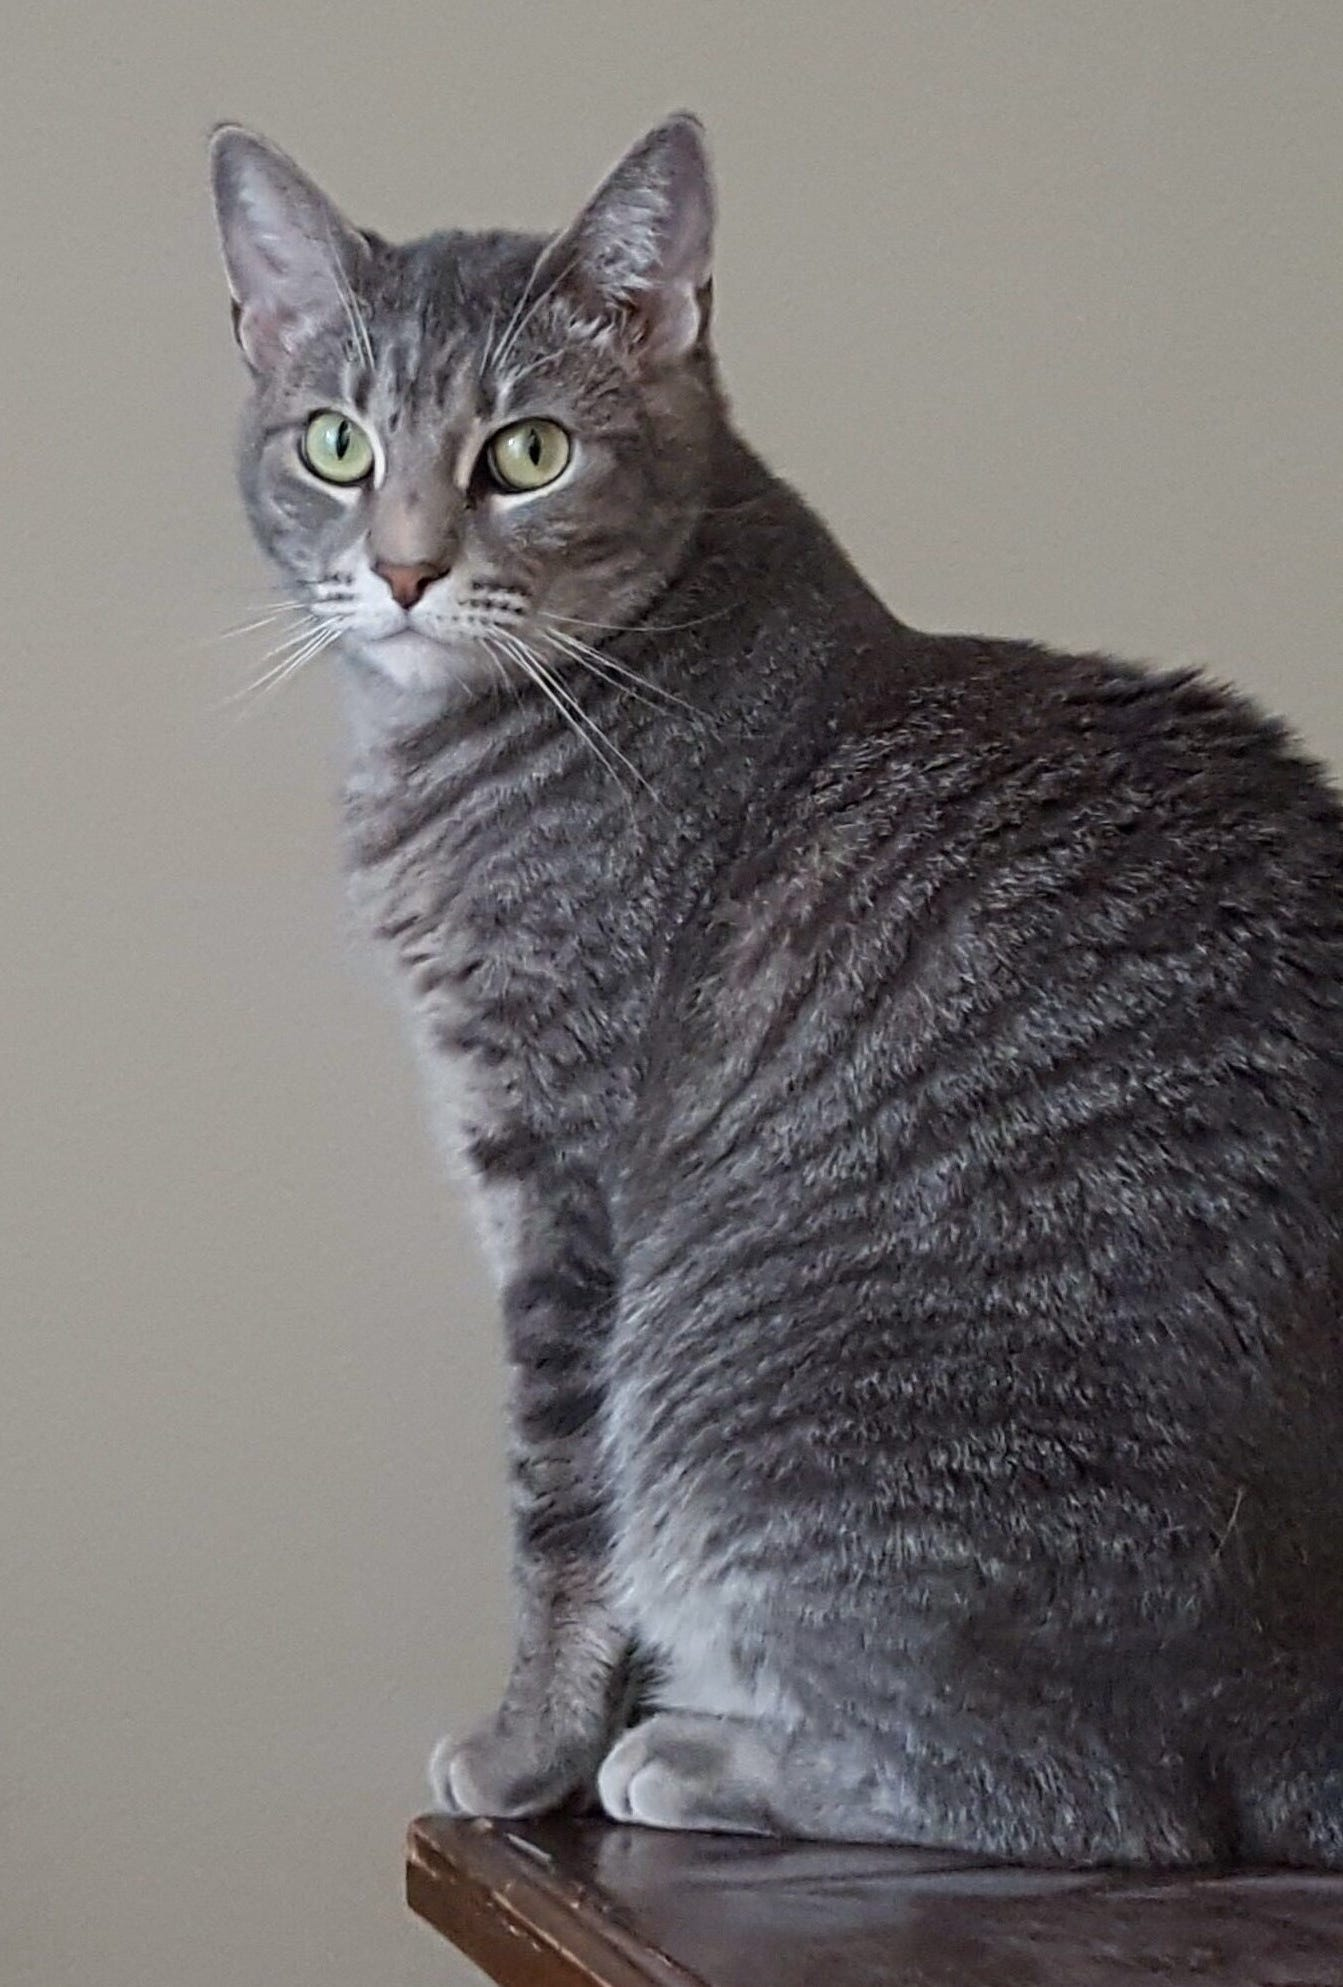 Bastet, a female gray tabby, was found dead in a mound of debris from the Feb. 24 pileup on Interstate 41 near Neenah.